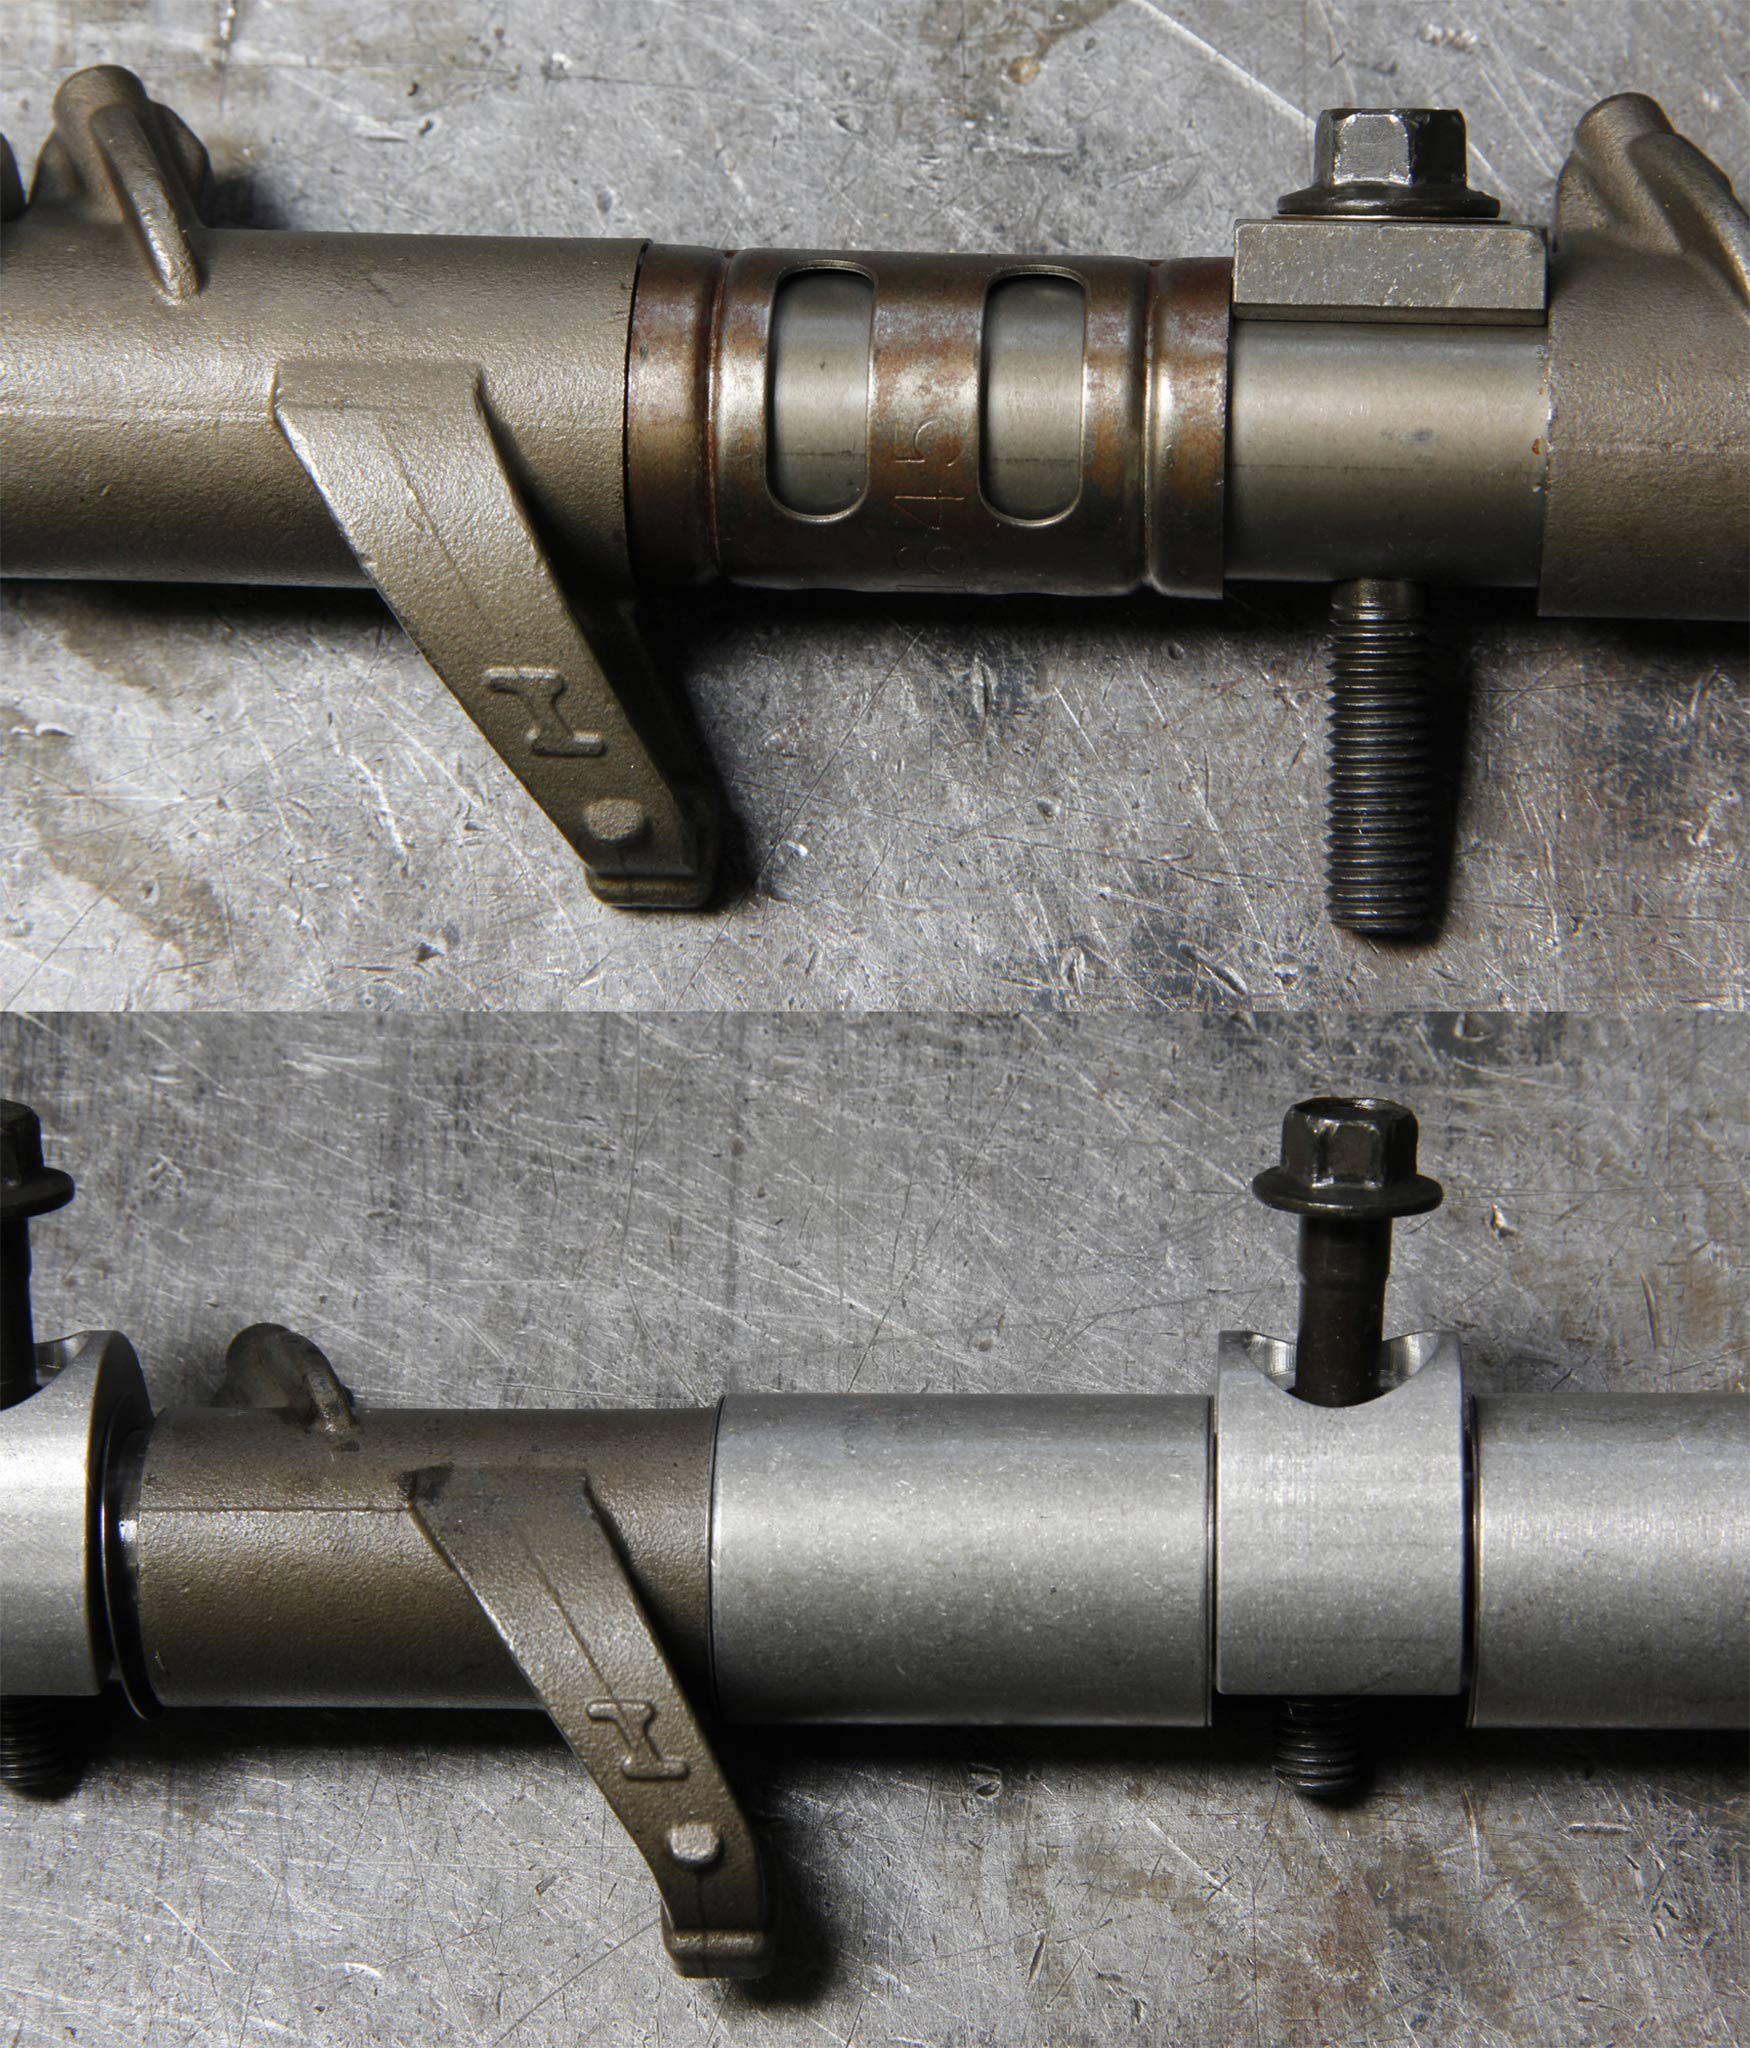 7. The factory rocker shafts allow the rocker arms to move laterally, bouncing between the spark plug boss and the rocker shaft tower. To fix this, an aluminum sleeve with steel shims and a new stand is added to get the correct clearance and stability.